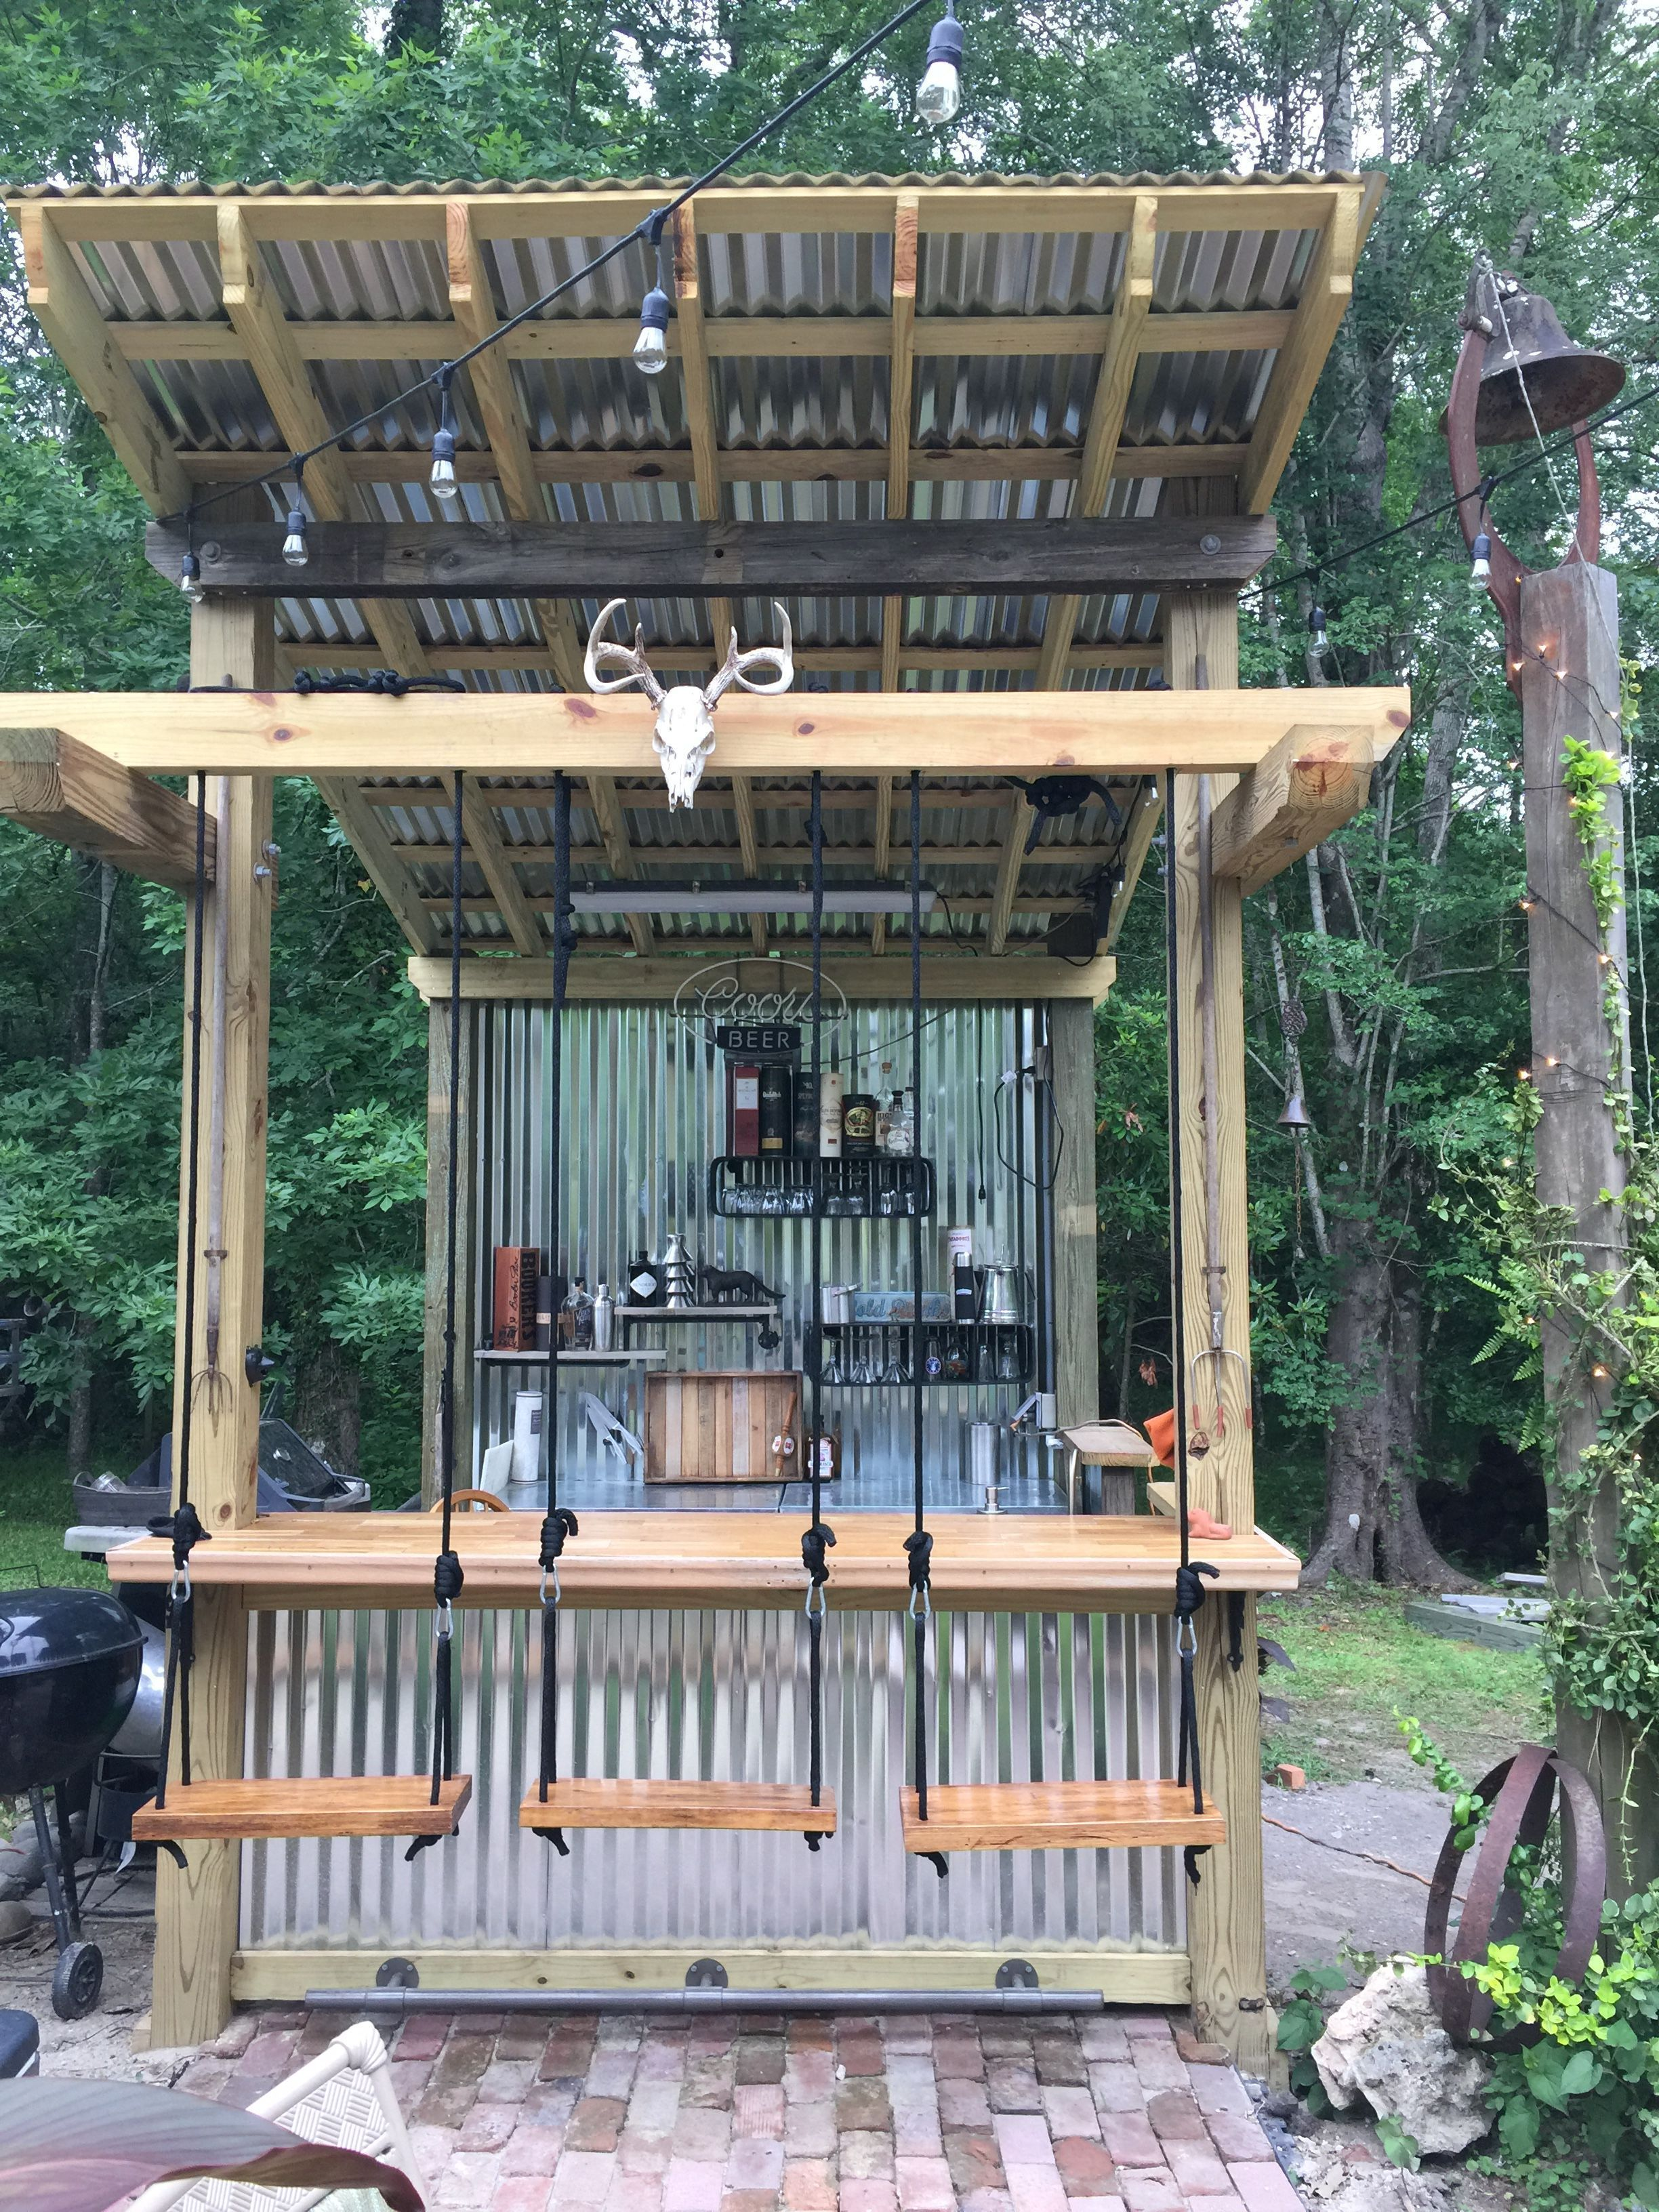 Locate Ideas For Uncovered Flare Pit And Fireplace Designs That Let You Get As Simple Or As Fancy As Outdoor Kitchen Plans Backyard Bar Outdoor Kitchen Design